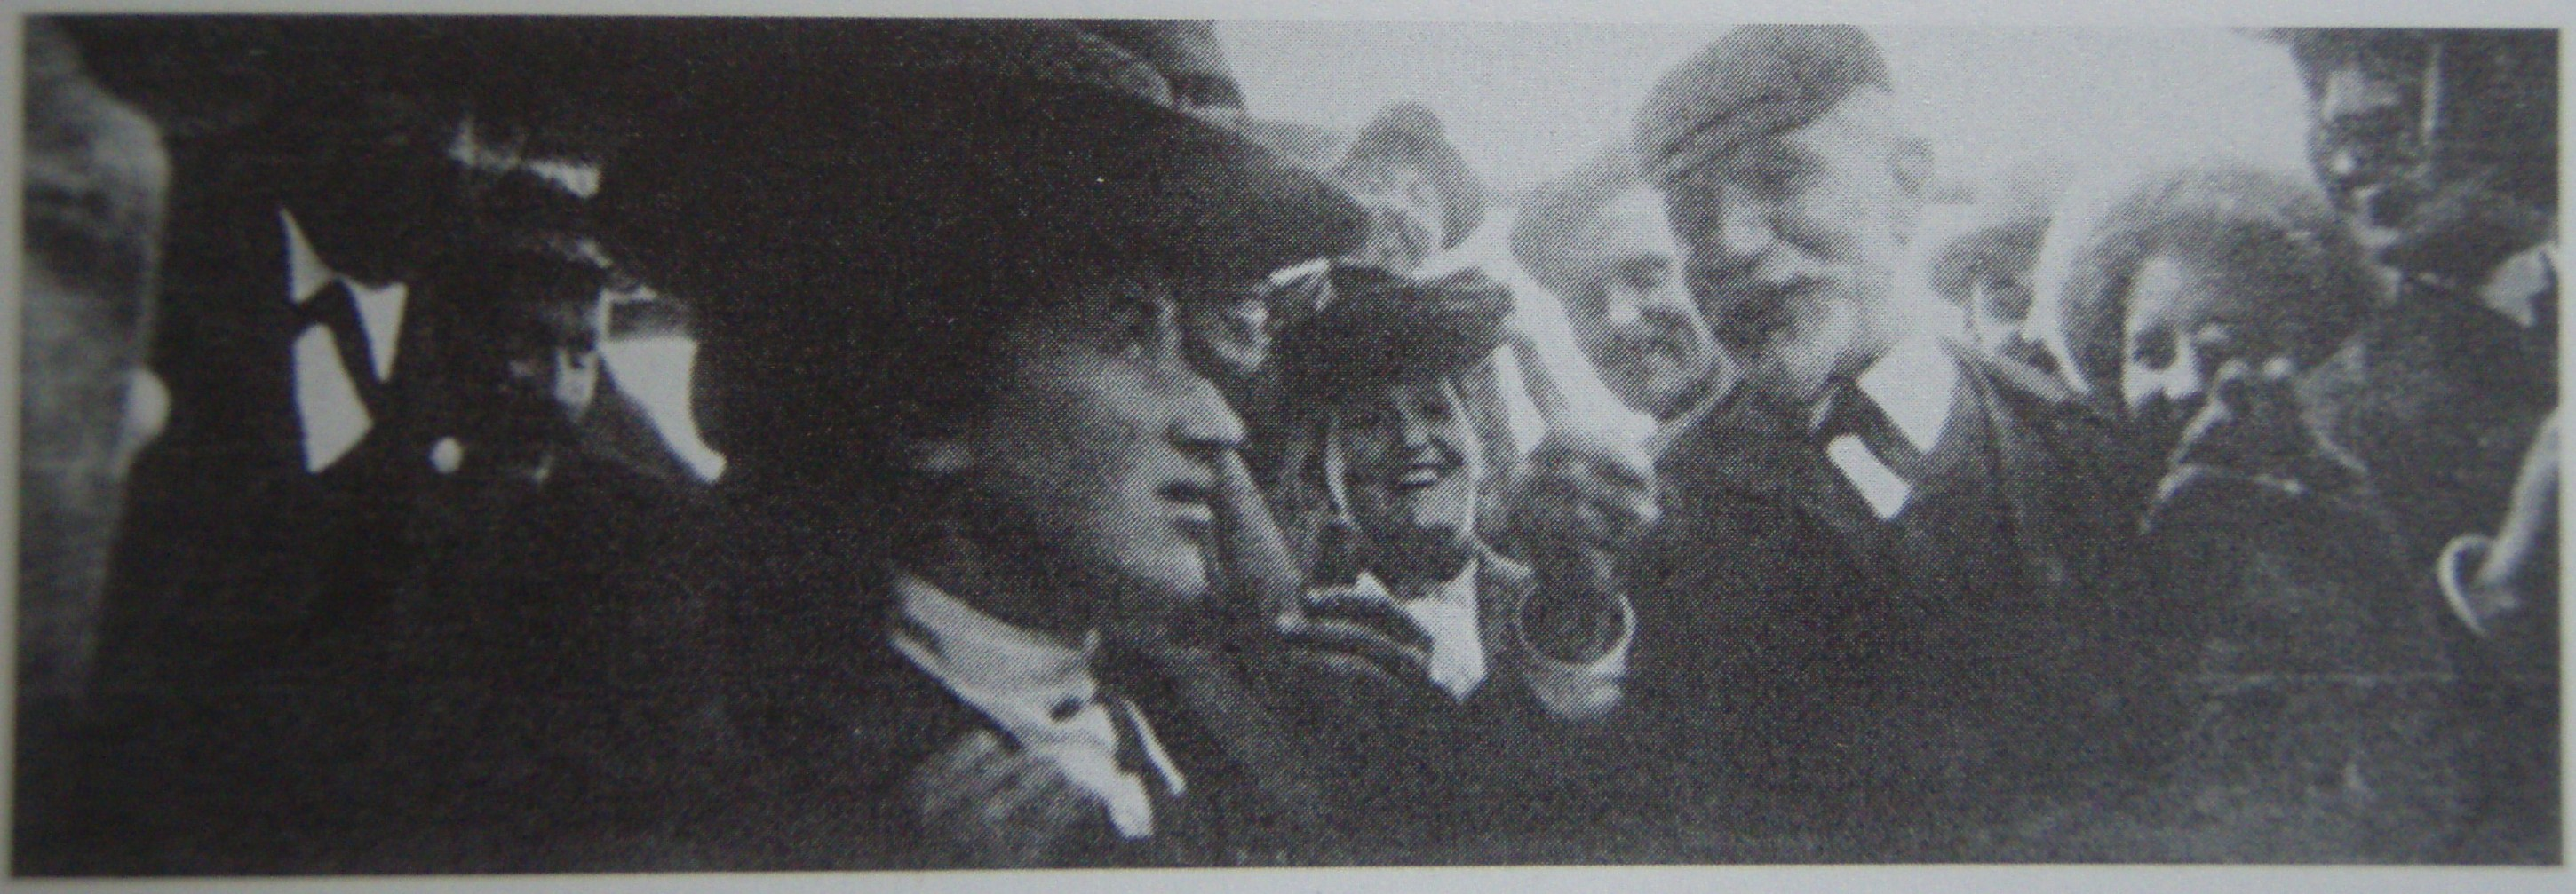 rosa-luxemburg-and-august-bebel-1904-amsterdam-laschitza